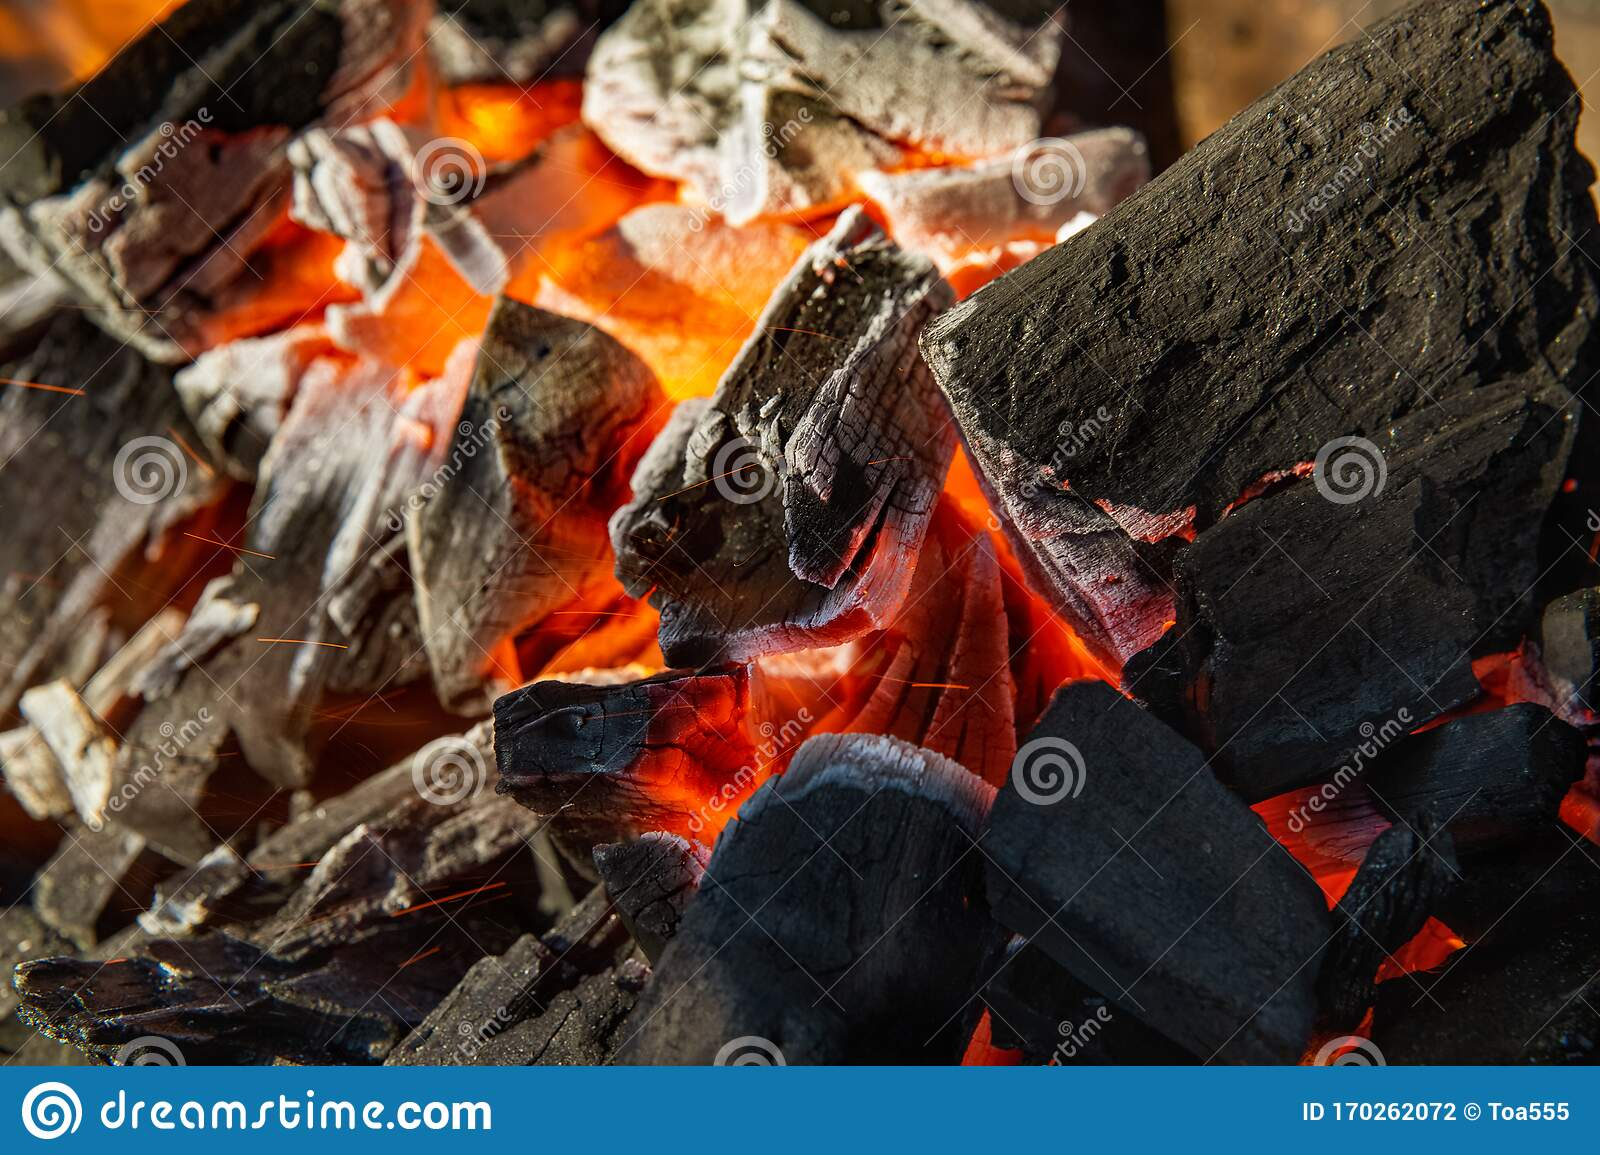 Charcoal Is Starting To Burn In The Kitchen Grill Hot Charcoal And Flame With Smoke Stock Photo Image Of Smoke Vintage 170262072